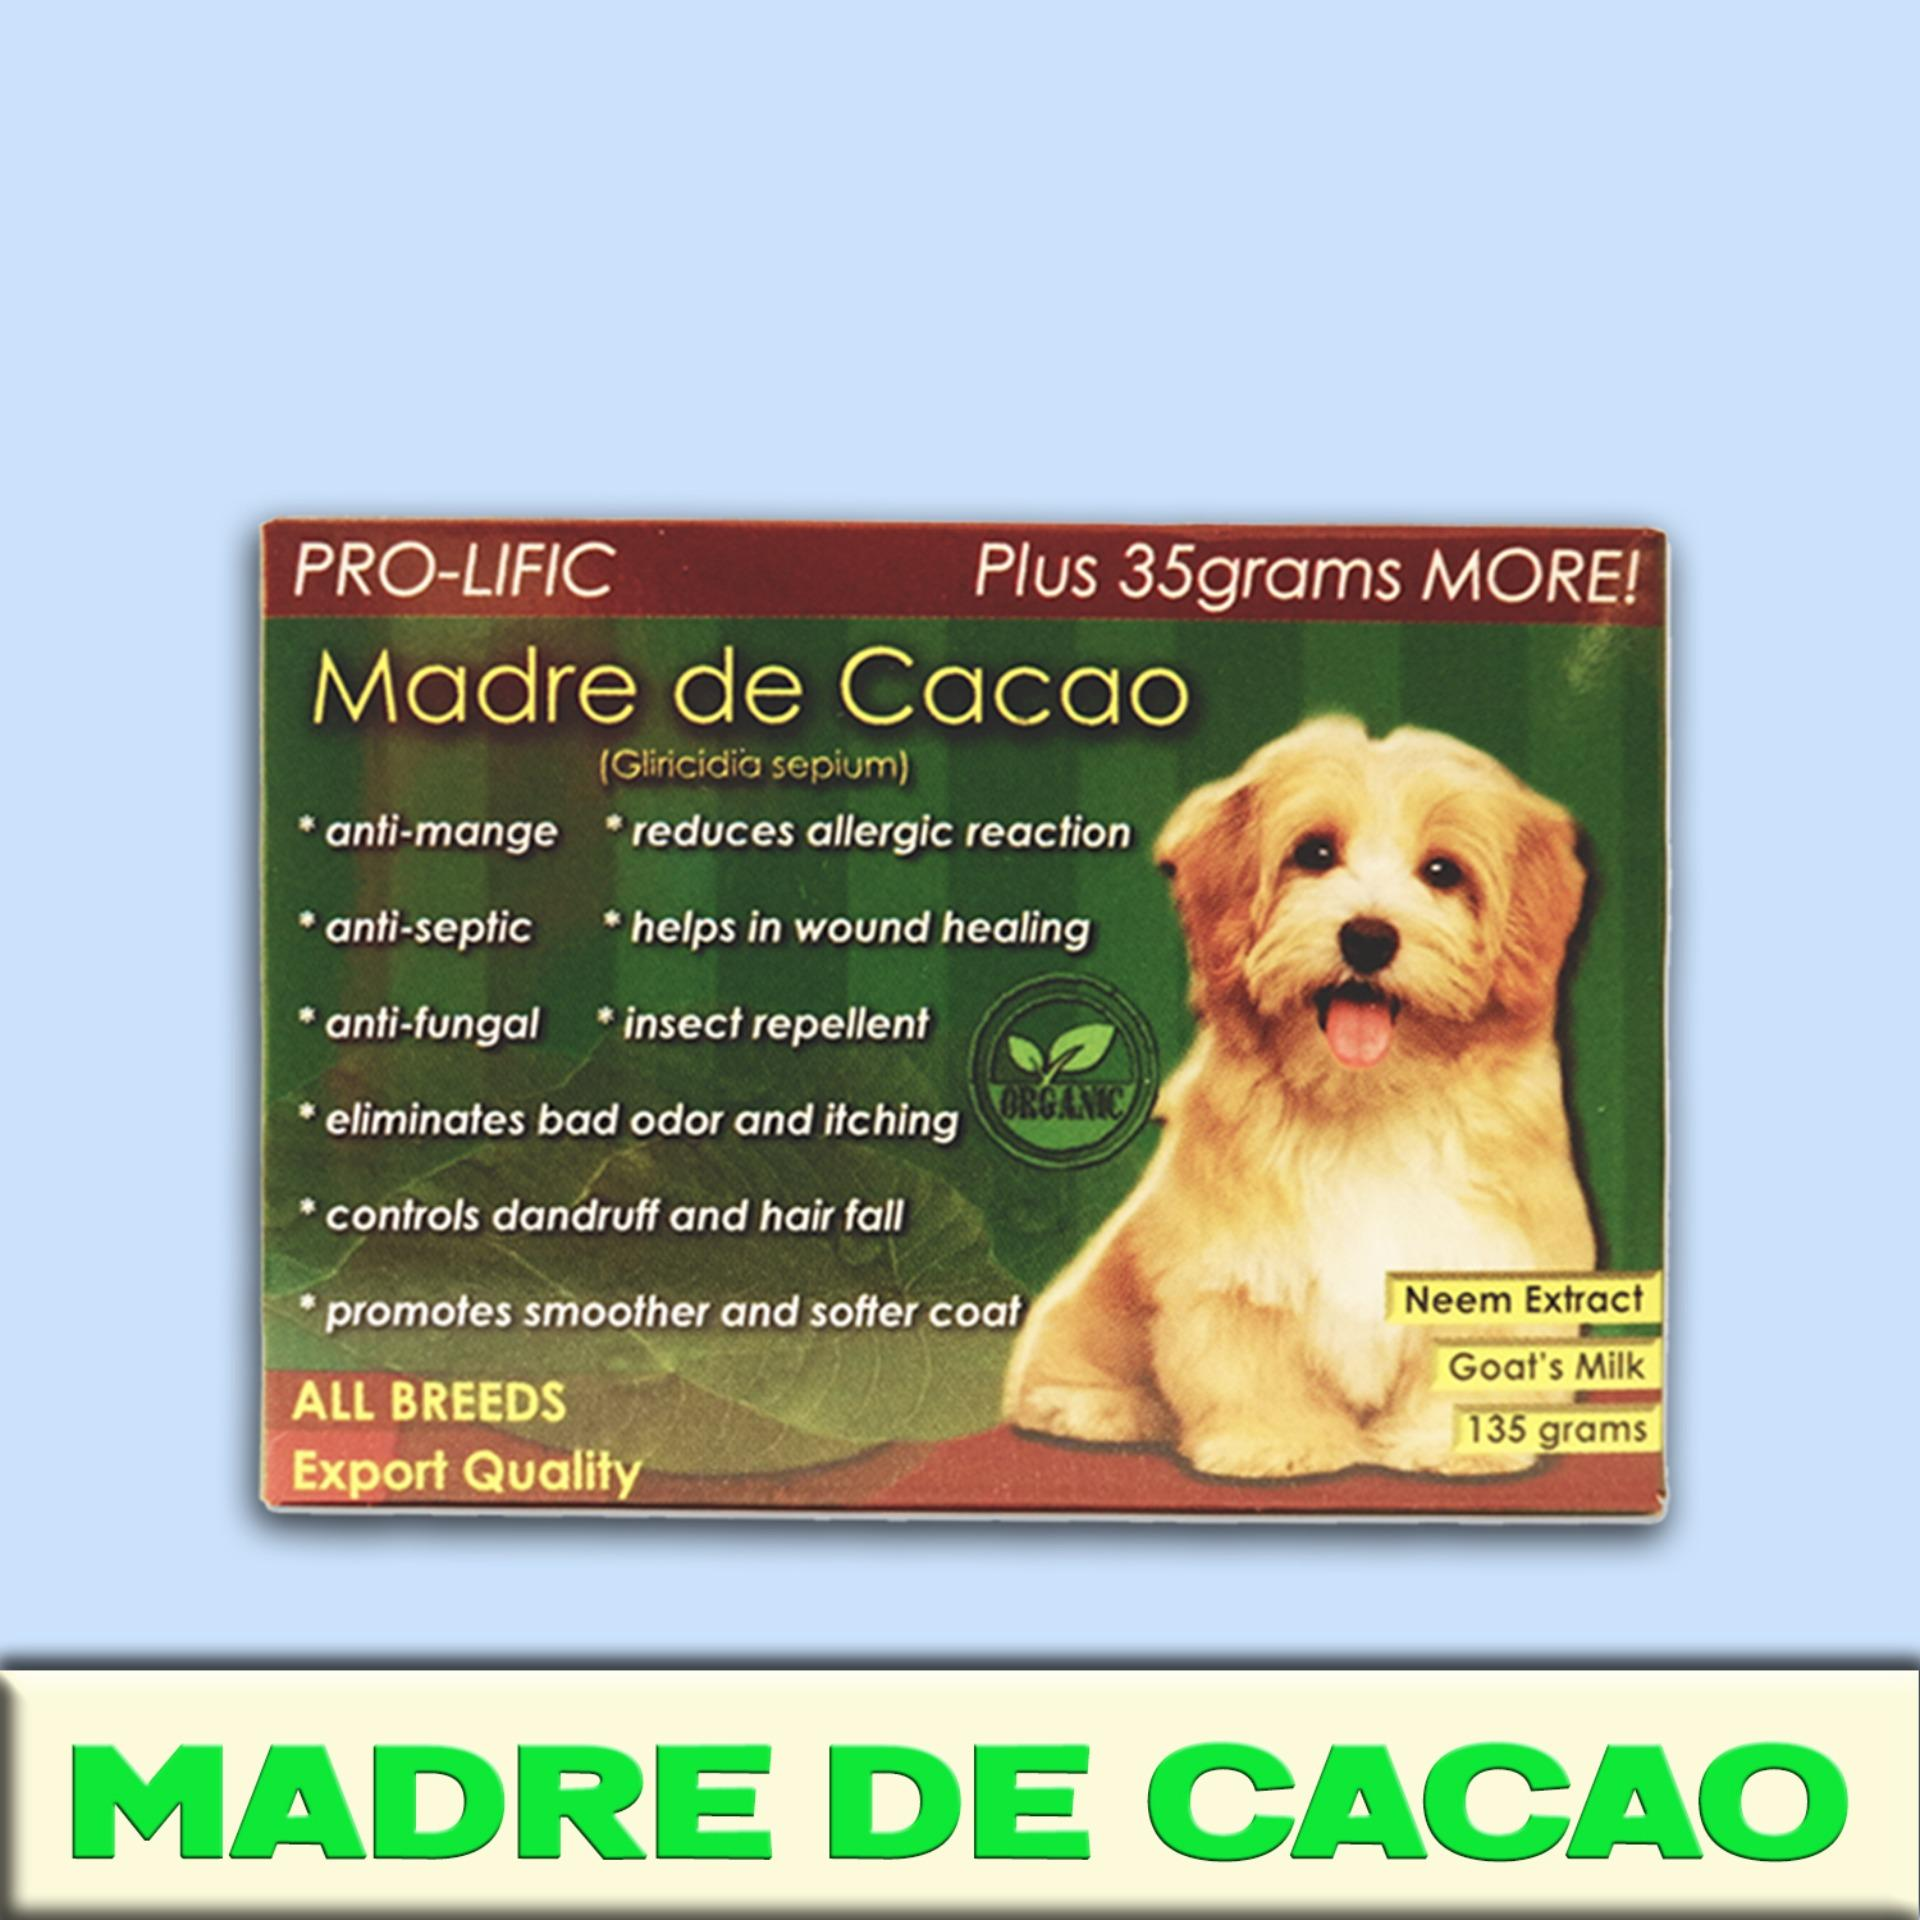 Madre De Cacao Organic Soap For Cat And Dog Prolific 135g Anti Mange And Hotspots, Herbal Germicidal, Anti Redness, Itchiness, Or Allergies By Lkj.